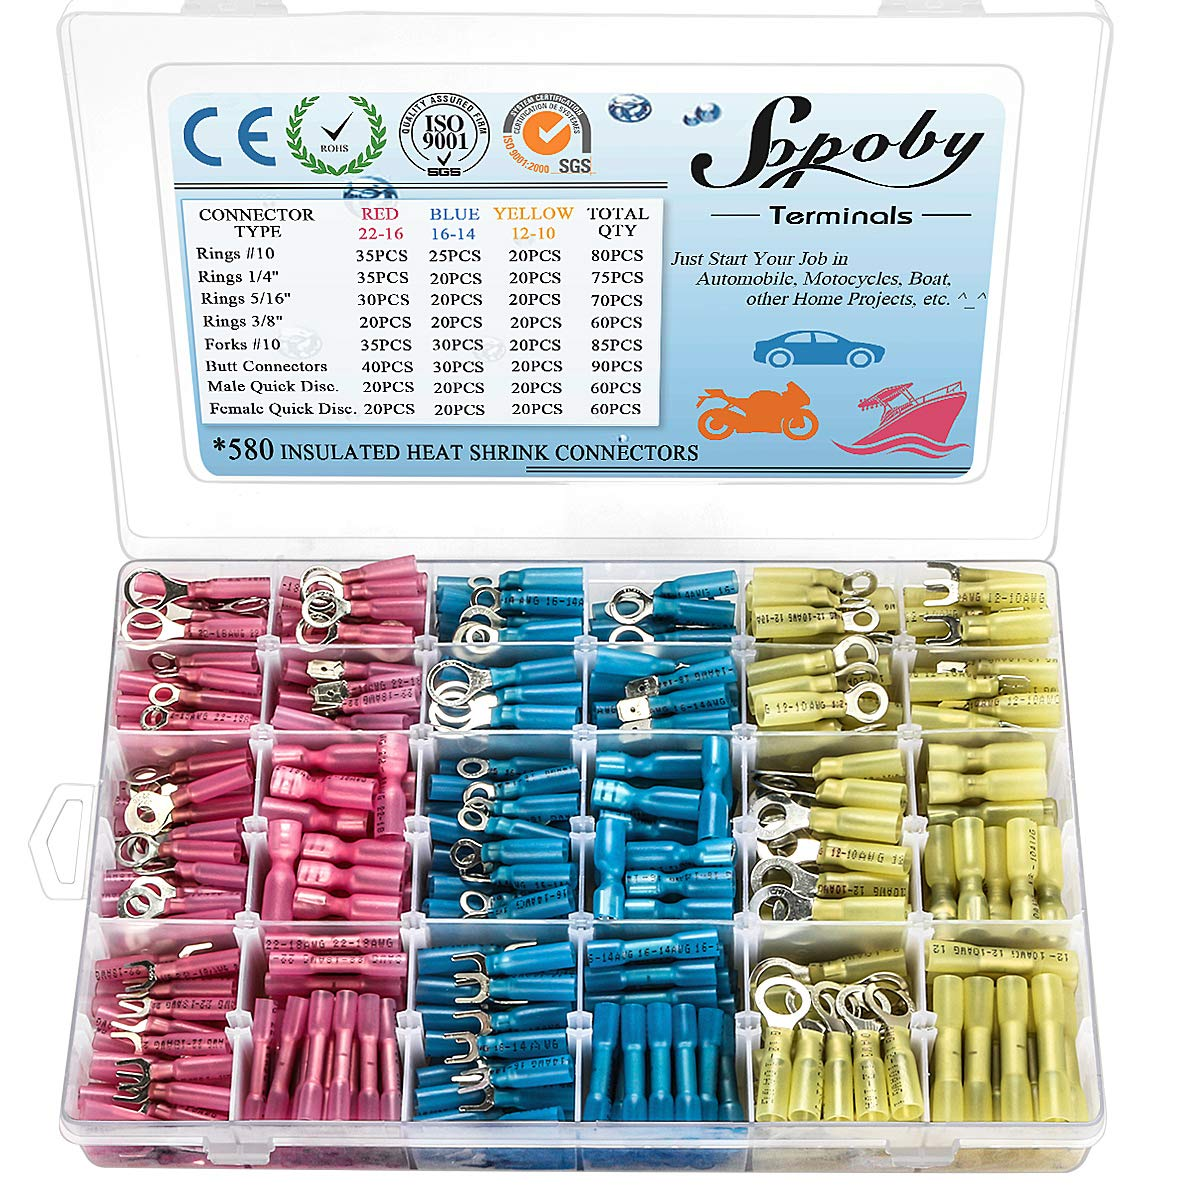 580 PCS Heat Shrink Wire Connectors, Sopoby Electrical Terminals Kit Marine Automotive Crimp Connector Assortment, Ring Fork Spade Butt Splices